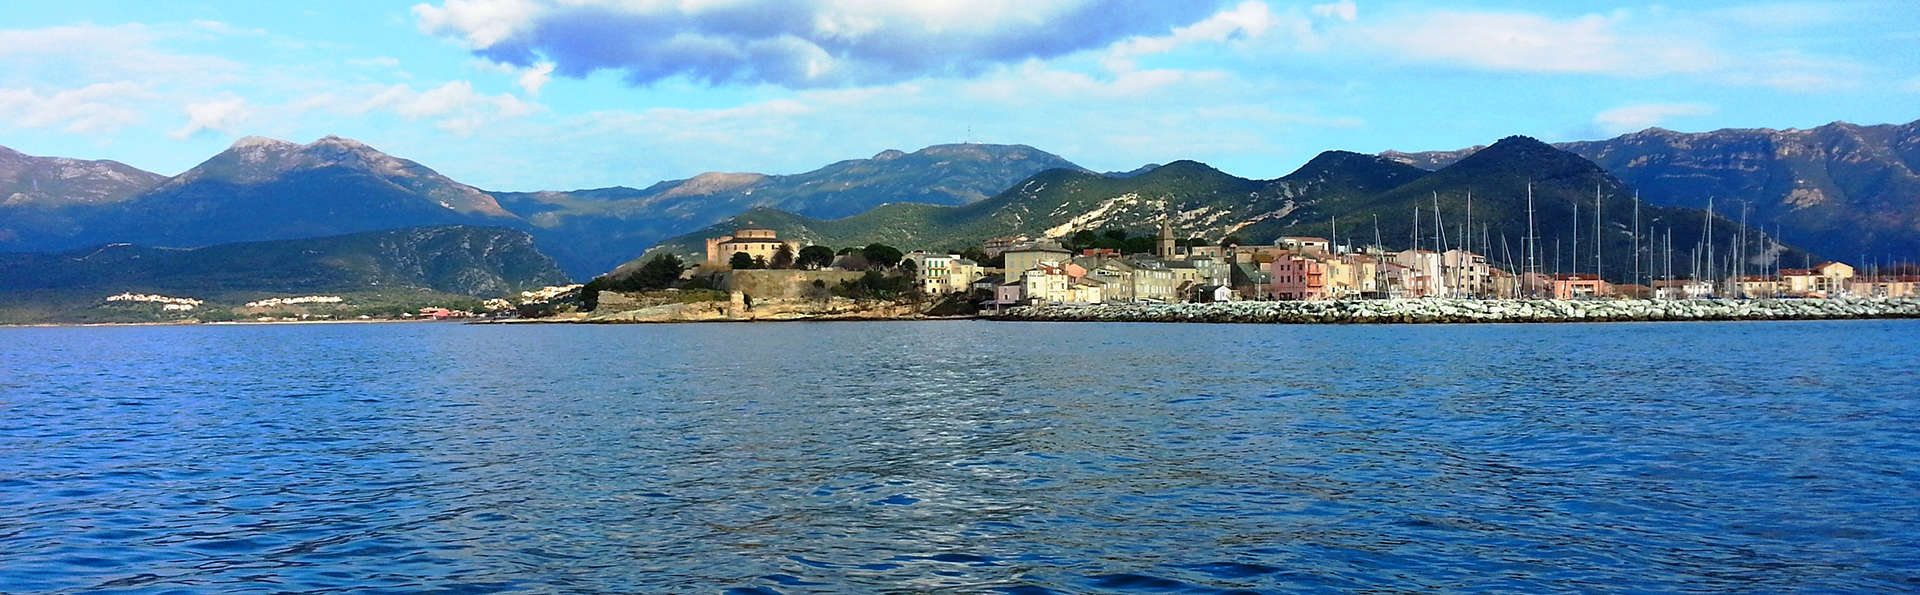 Week-end en Corse